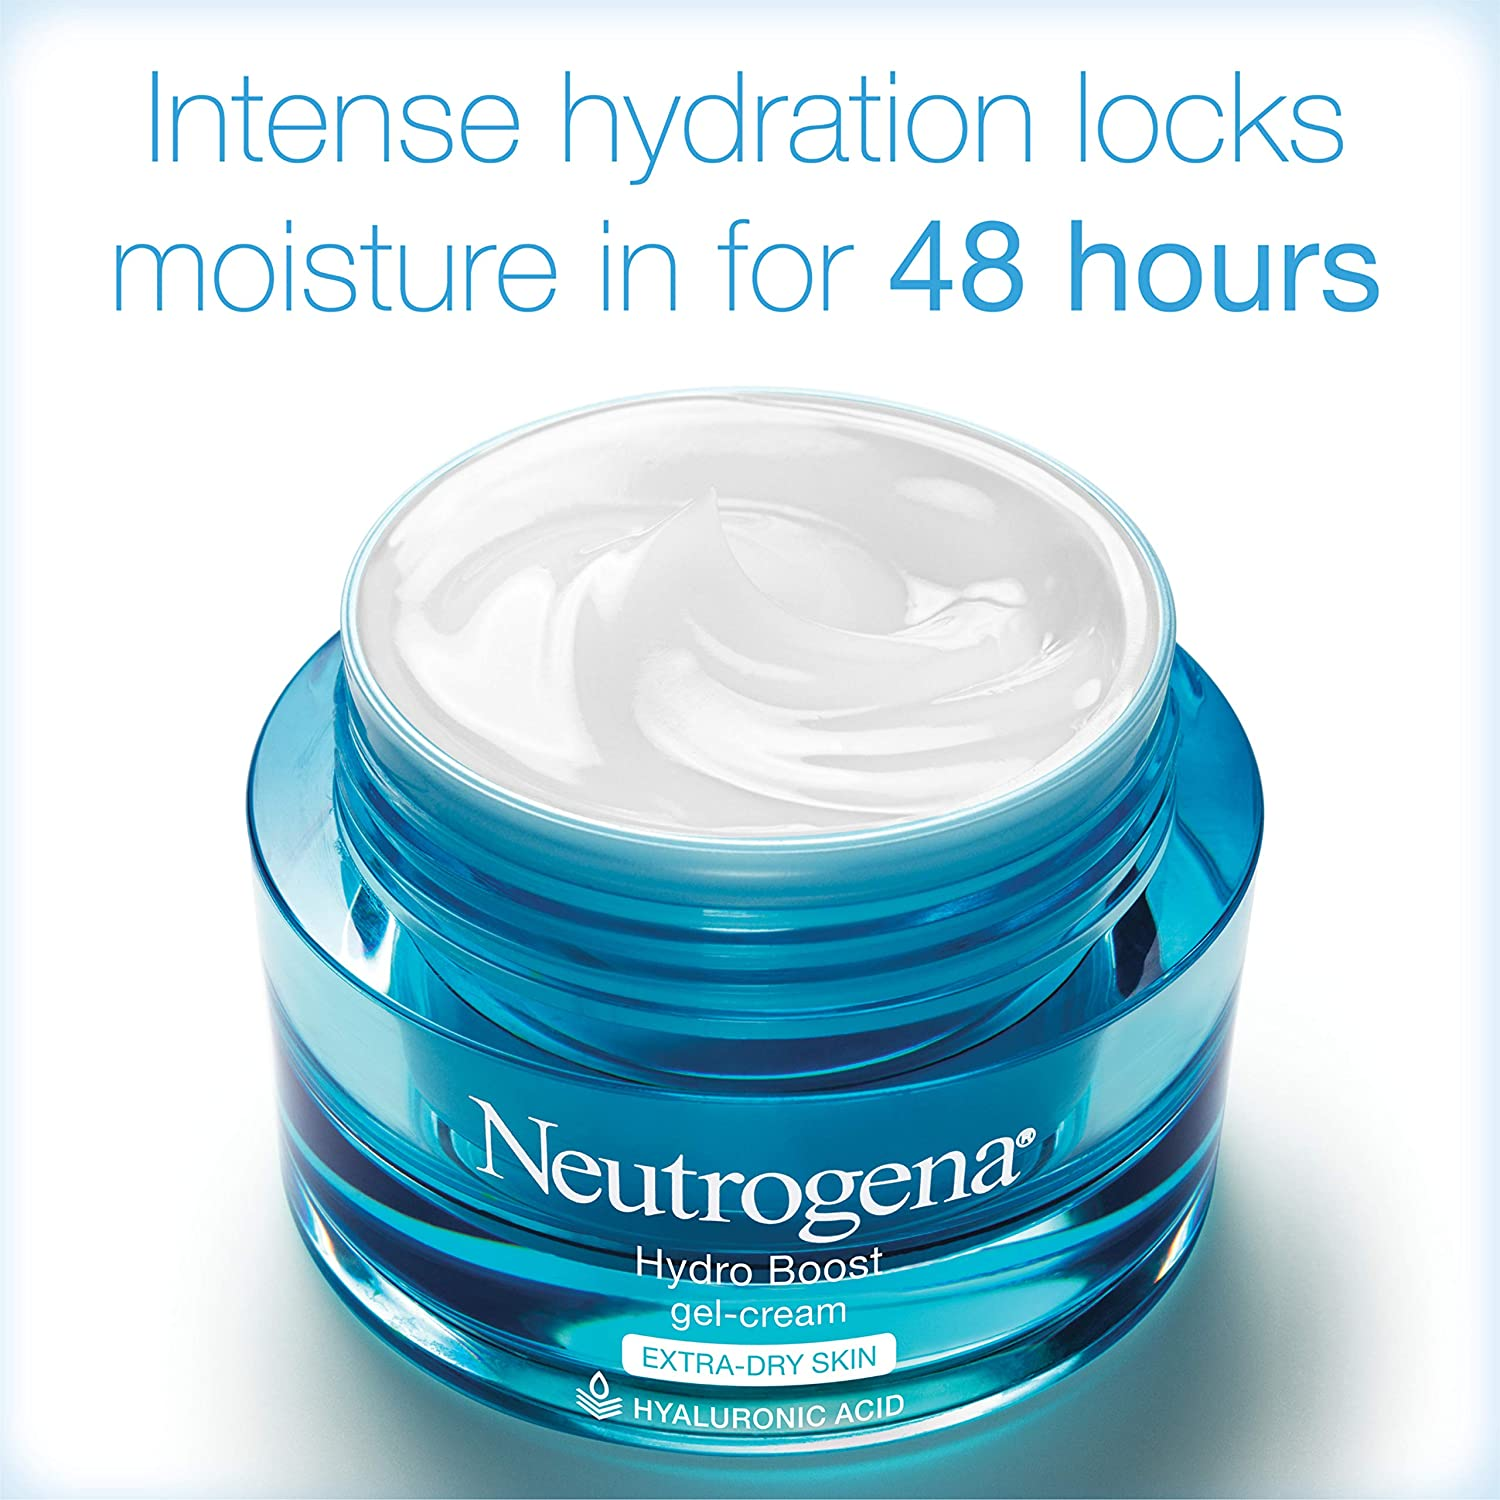 Neutrogena Hydro Boost Hyaluronic Acid Hydrating Gel-Cream Face Moisturizer to Hydrate & Smooth Extra-Dry Skin, Oil-Free, Fragrance-Free, Non-Comedogenic & Dye-Free Face Lotion, 1.7 oz: Prime Pantry